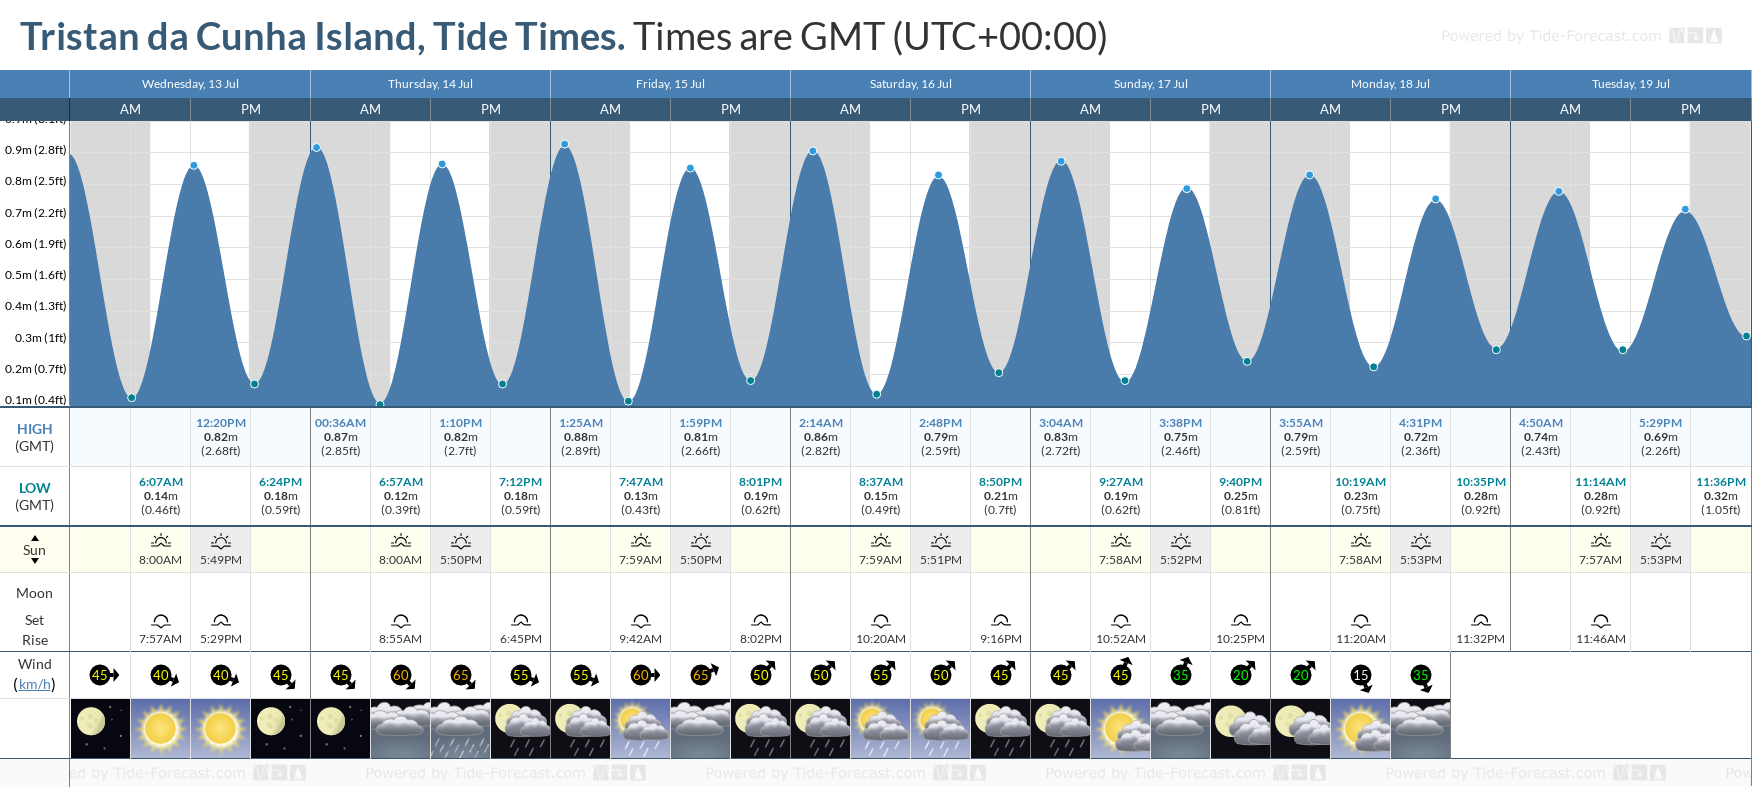 Tristan da Cunha Island Tide Chart including high and low tide tide times for the next 7 days